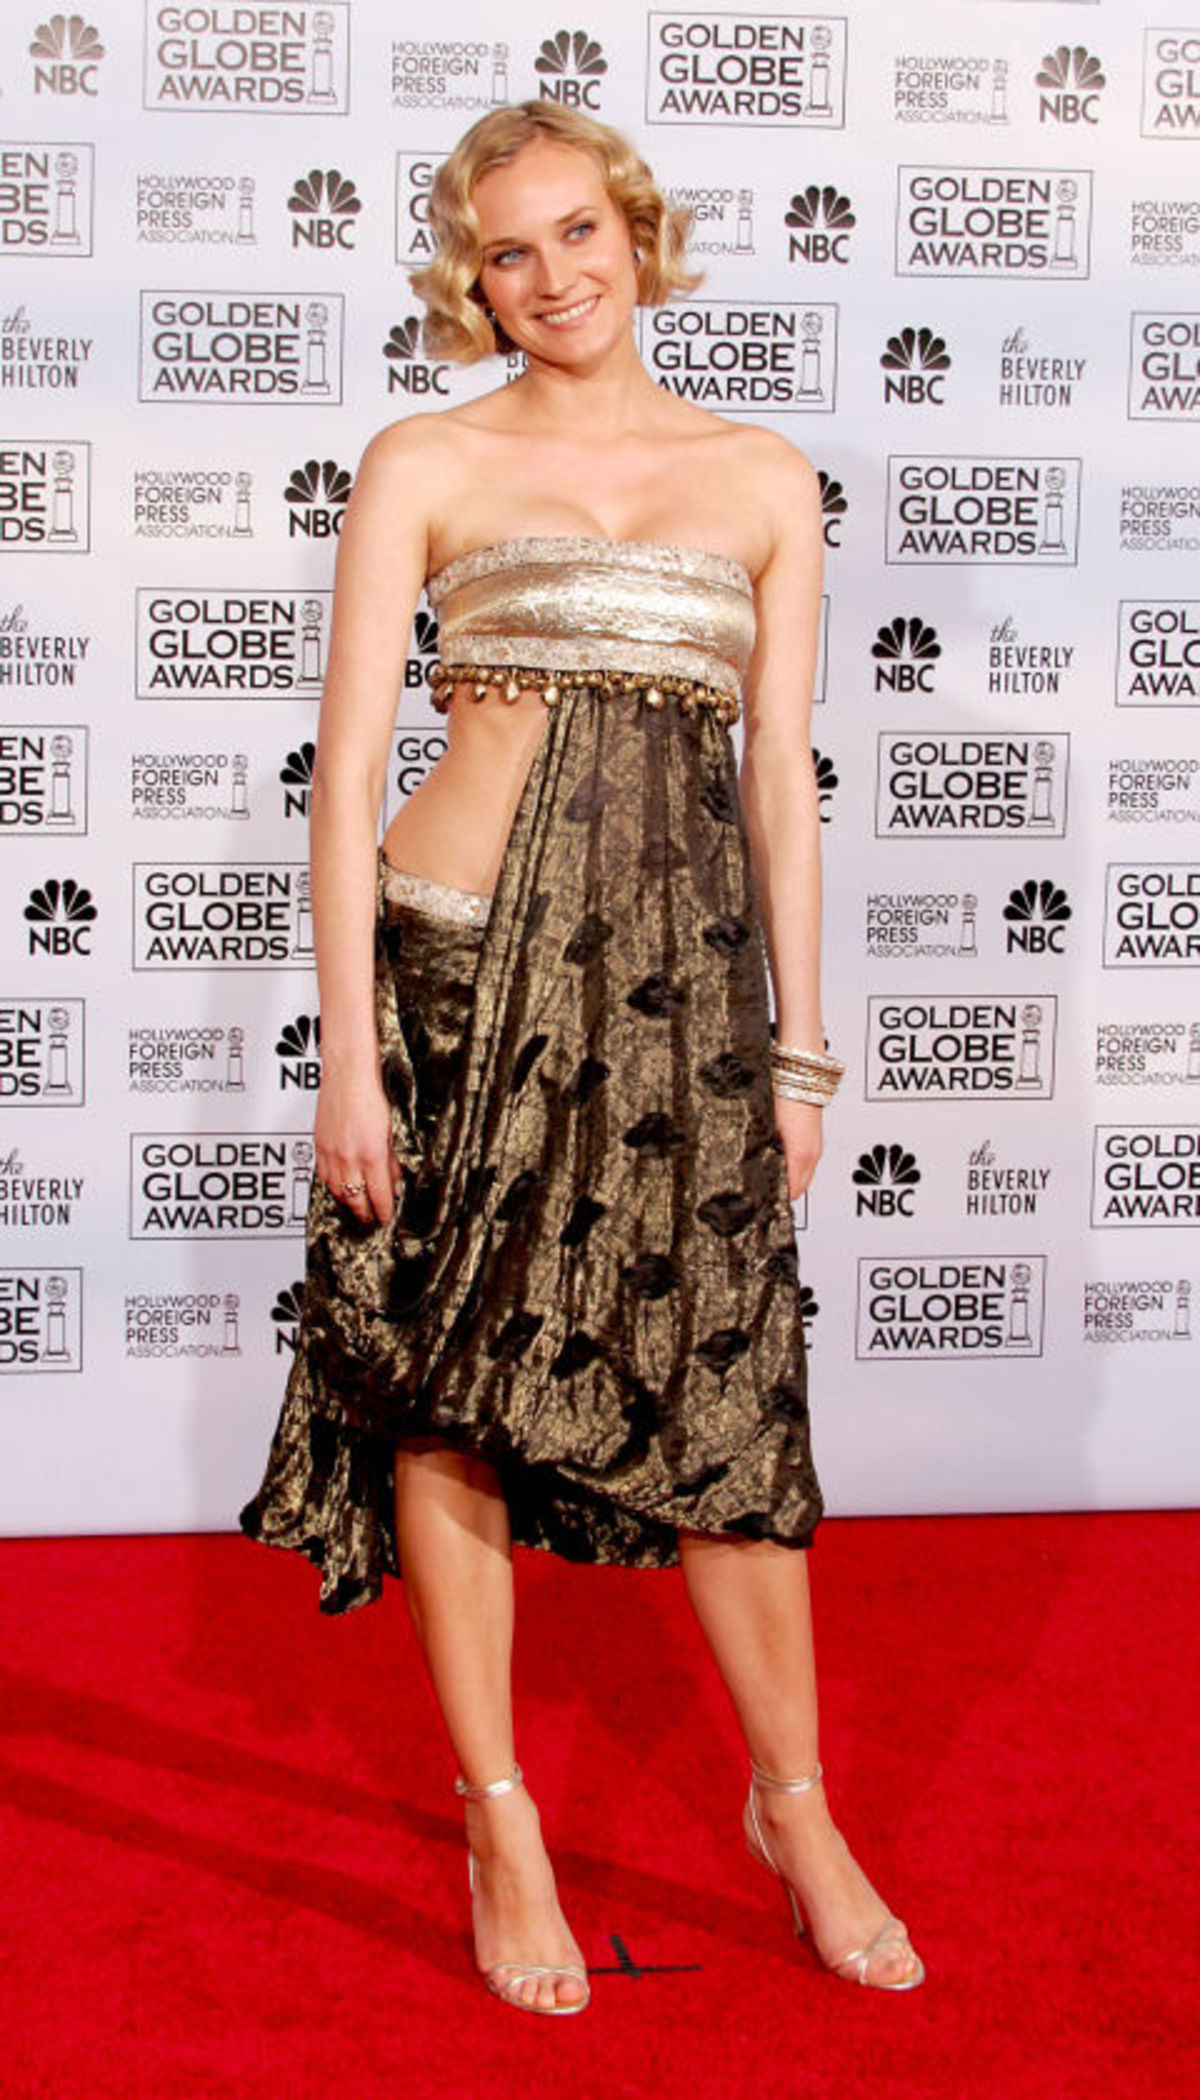 hbz-worst-gg-dresses-2005-gettyimages-52002473